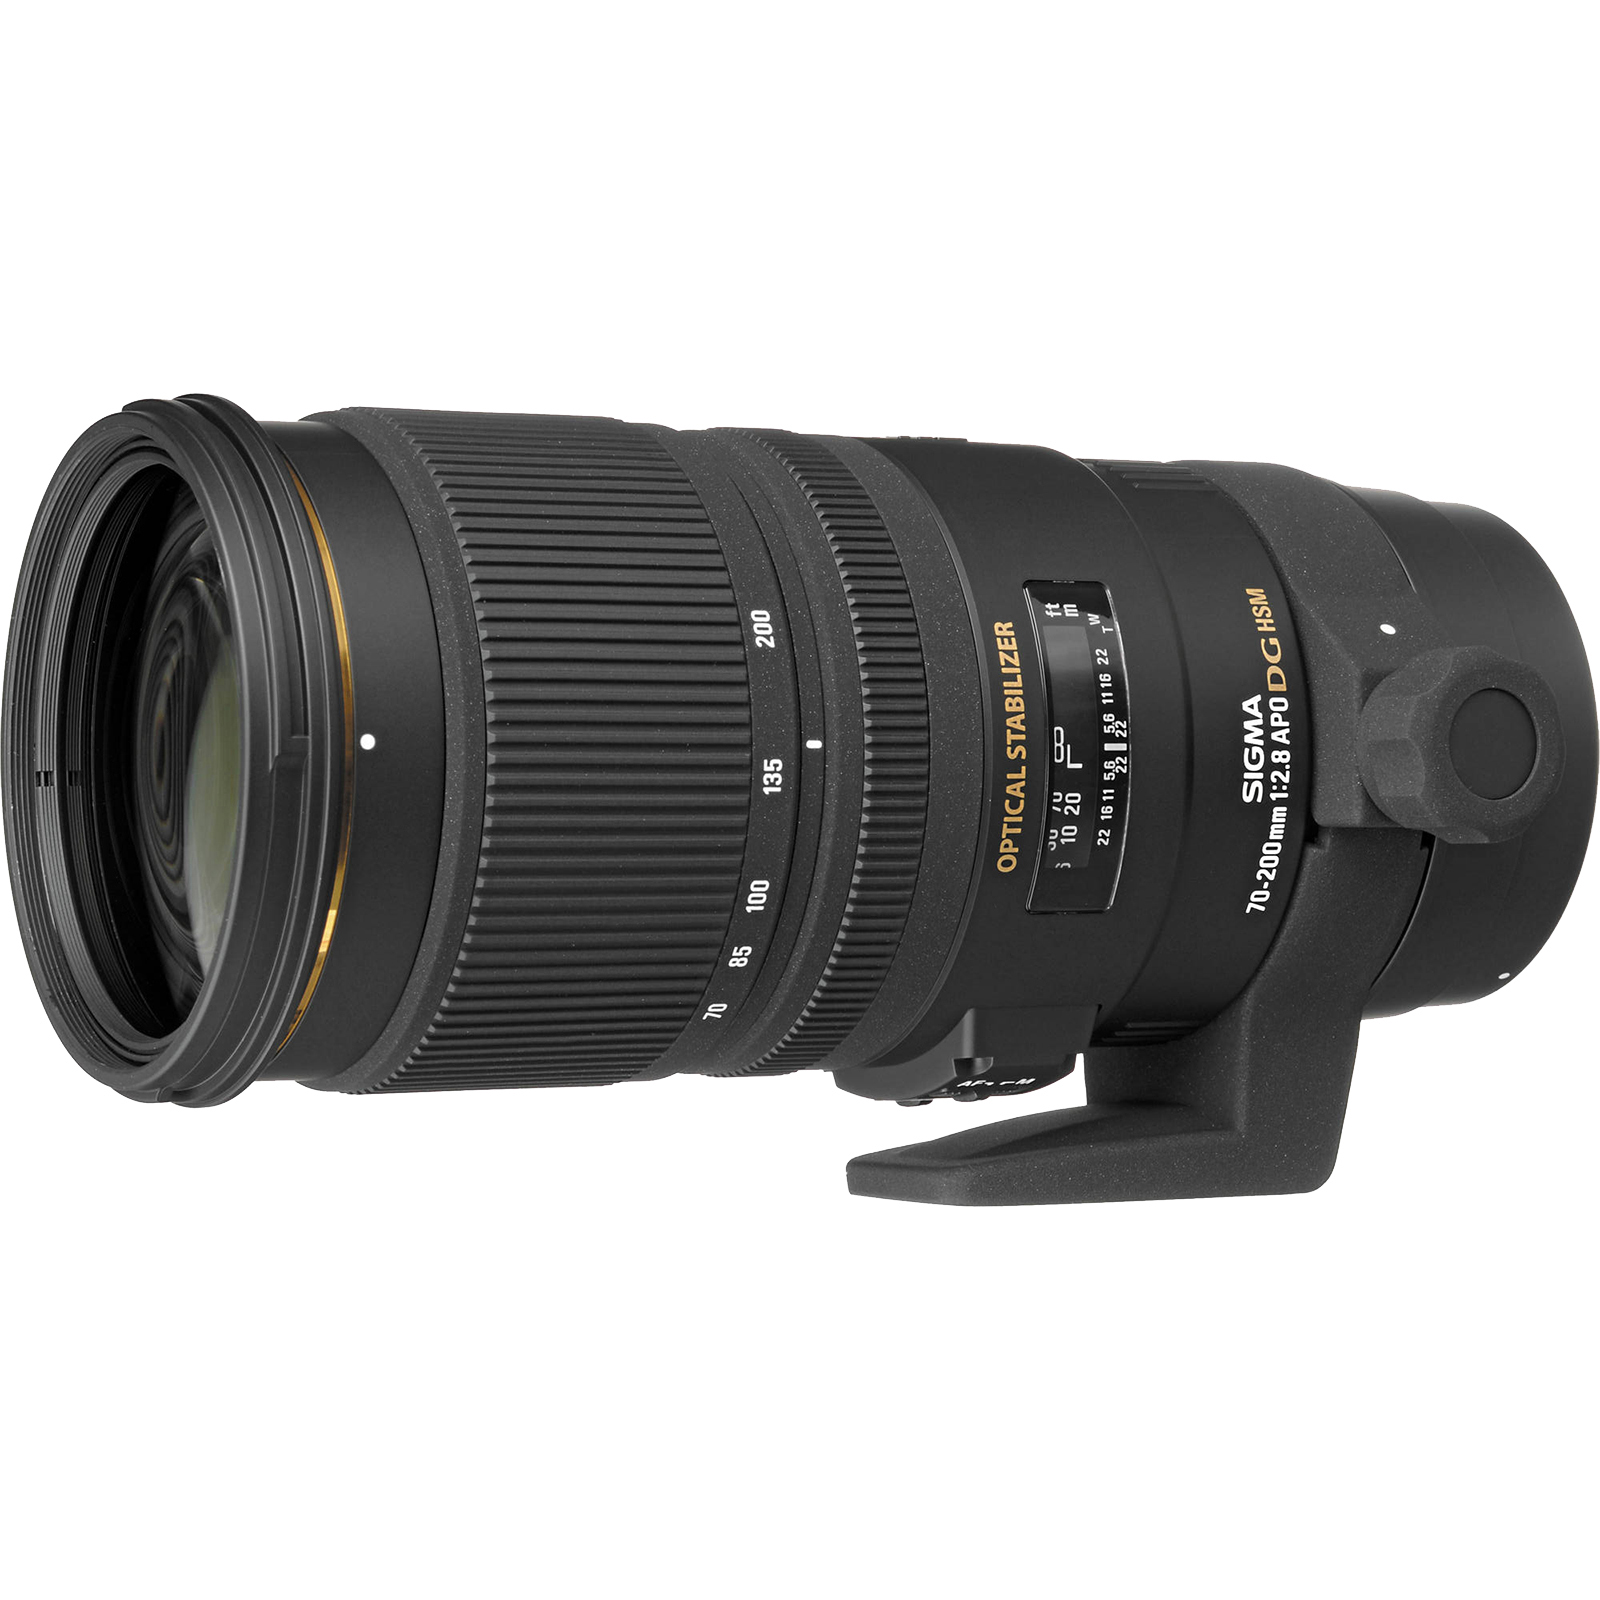 Sigma 70-200mm F2.8 EX DG HSM OS Lens For Nikon 589306